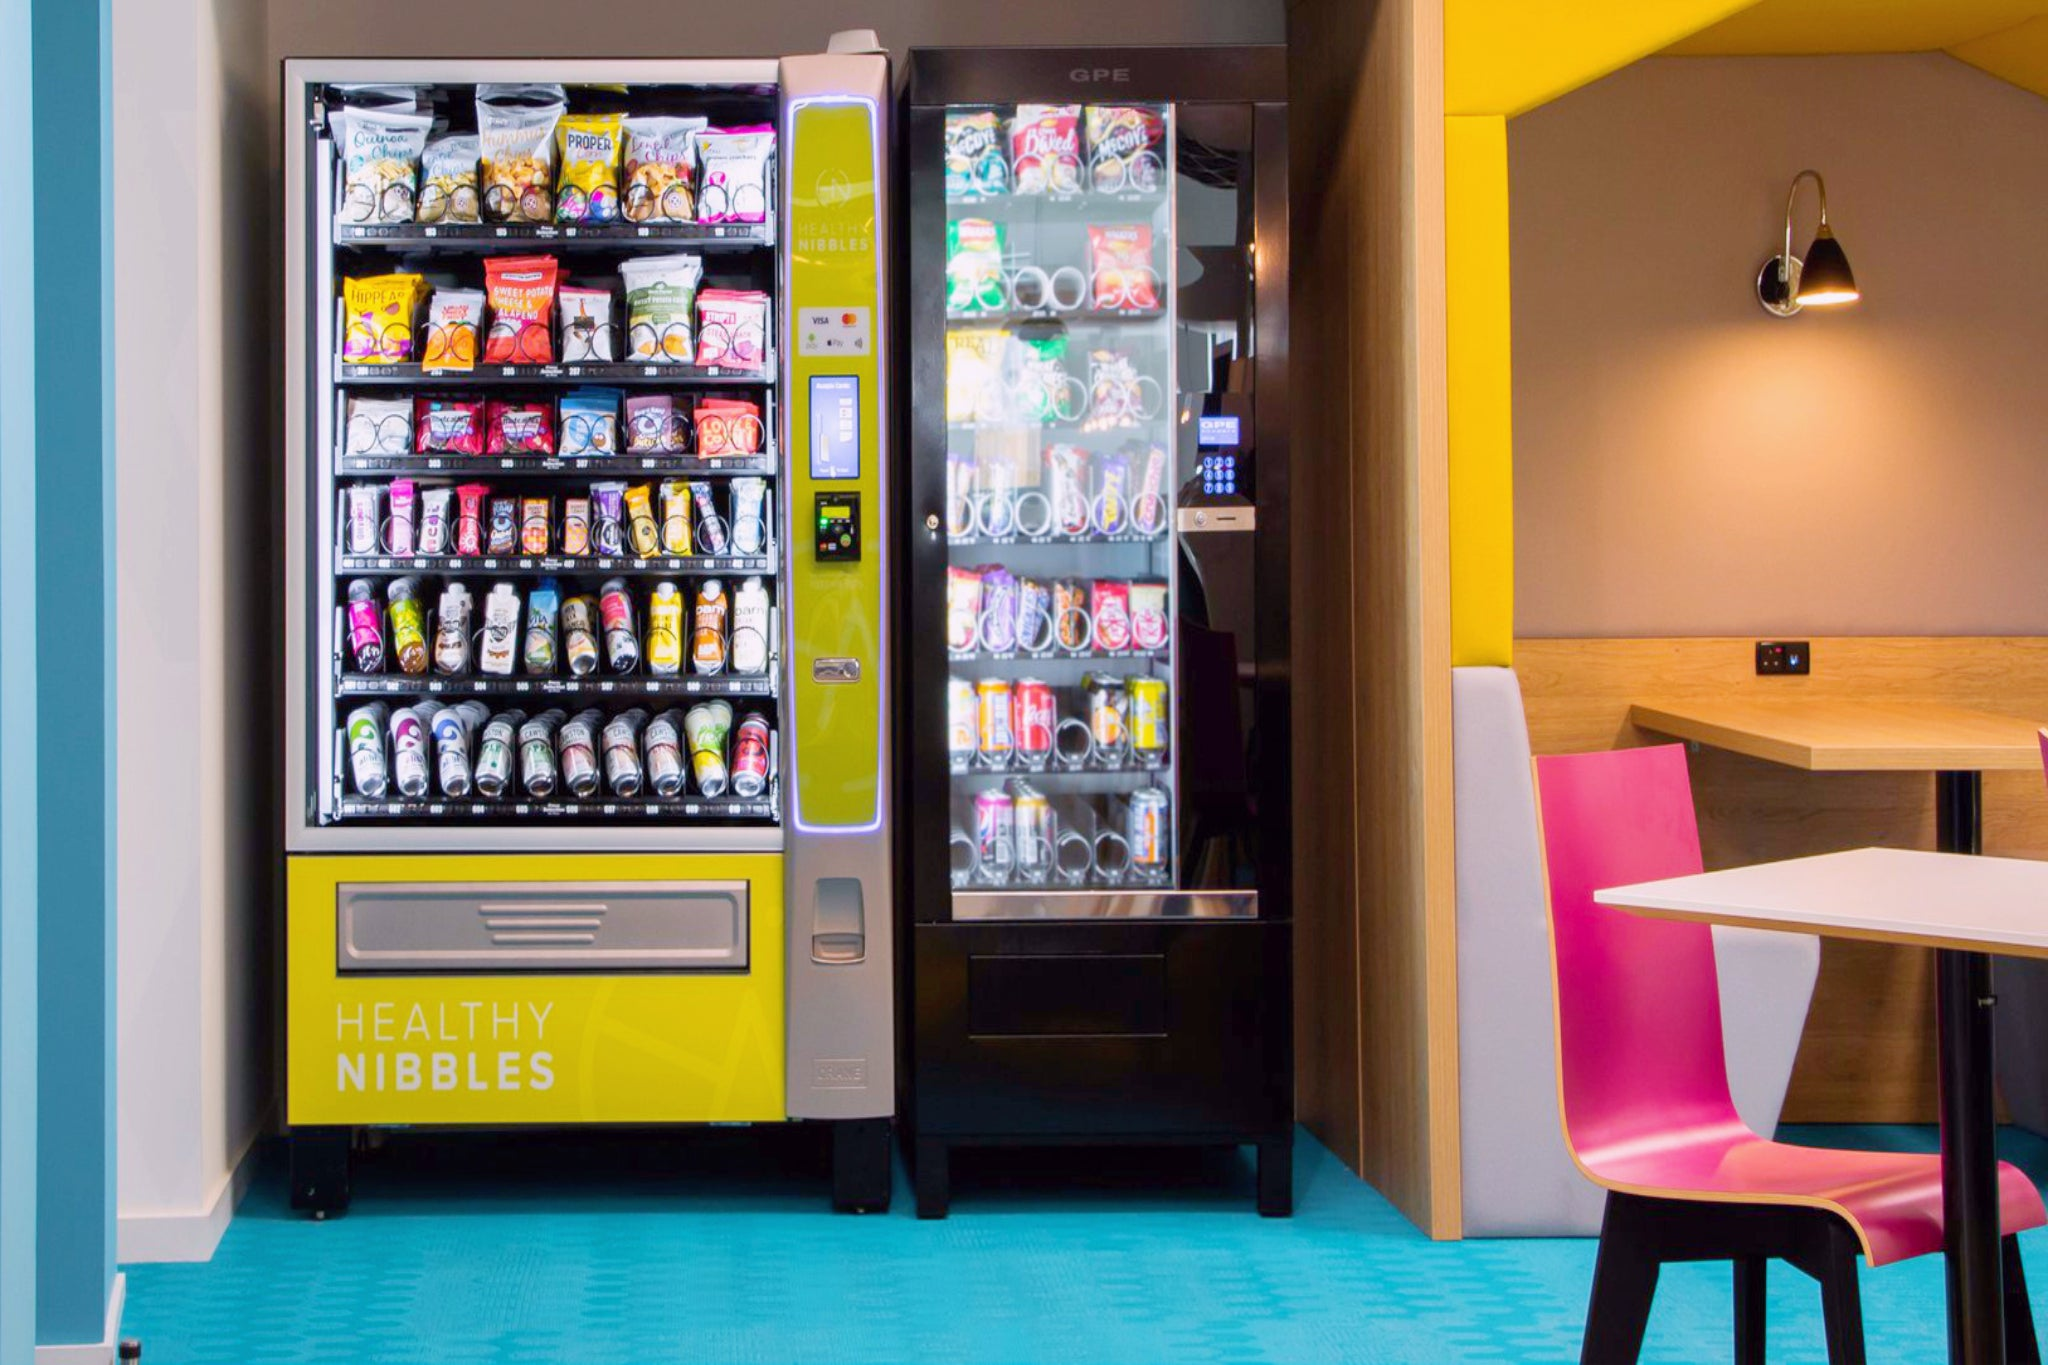 SARA ROBERTS - THE RISE OF HEALTHY VENDING